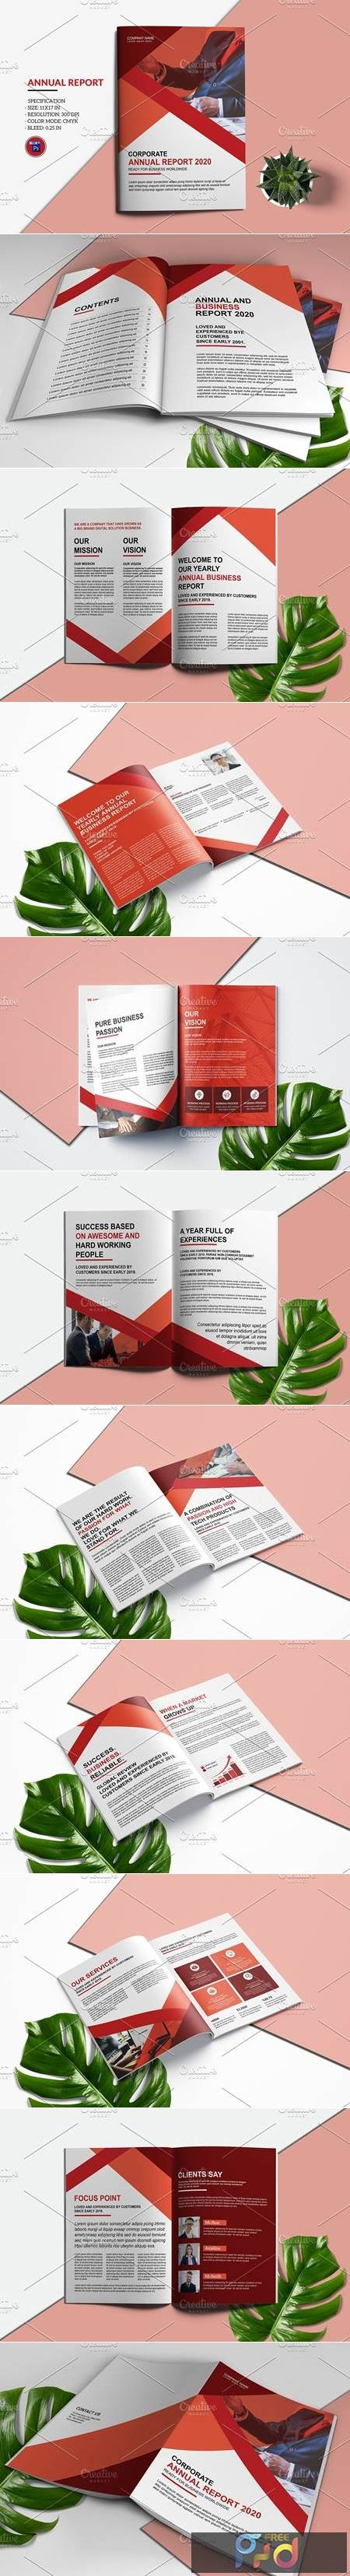 Annual Report Template V982 4442276 1